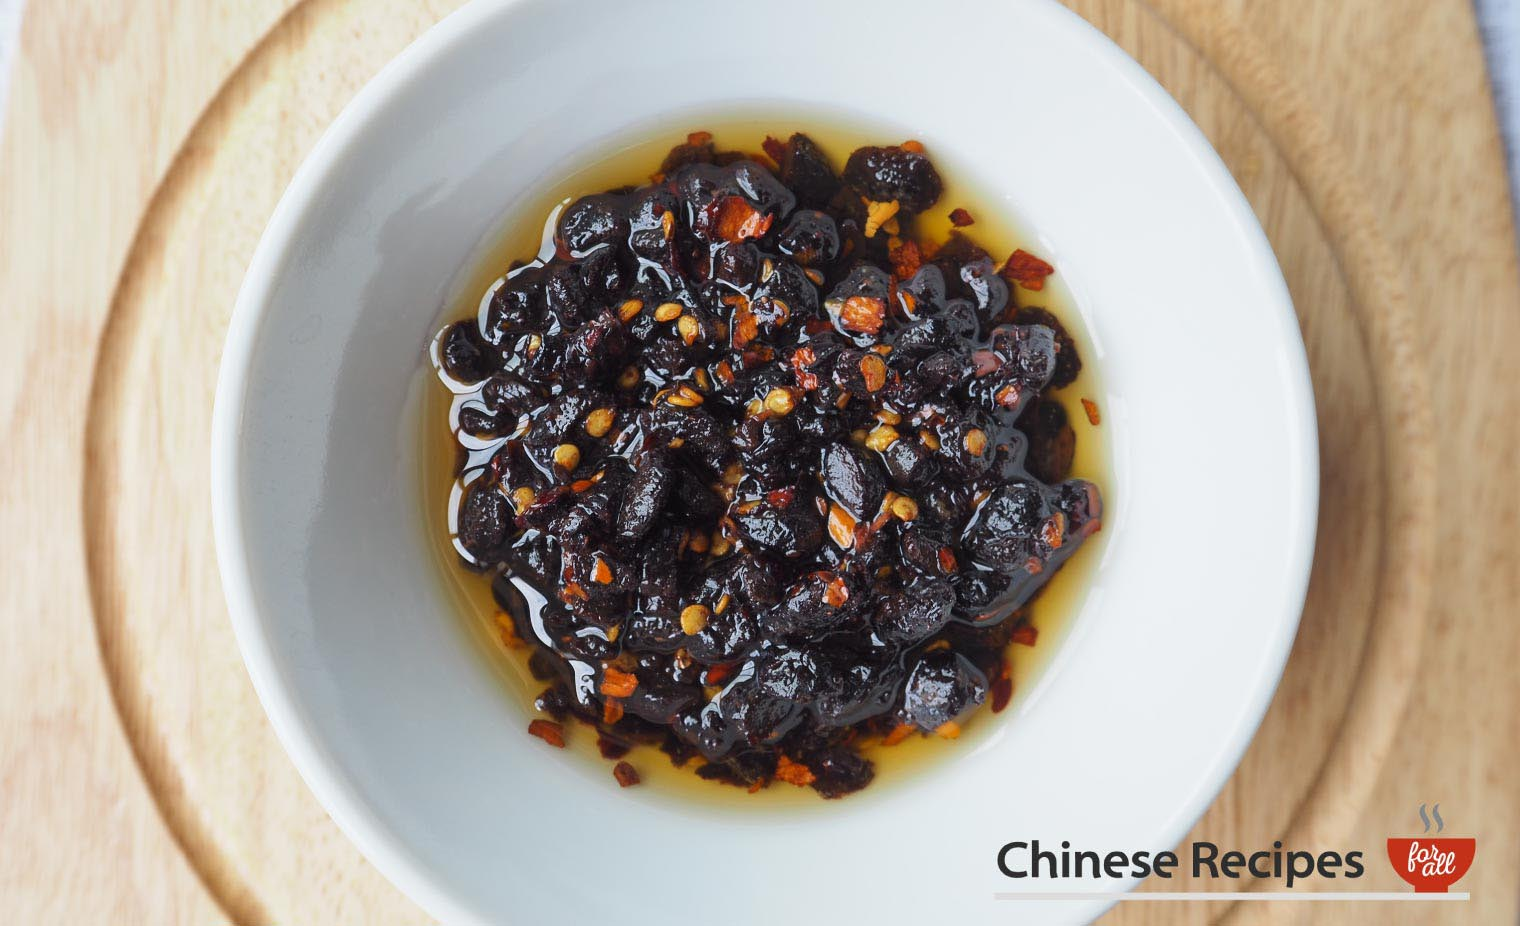 How to make Homemade Black Bean Sauce - Chinese Recipes For All